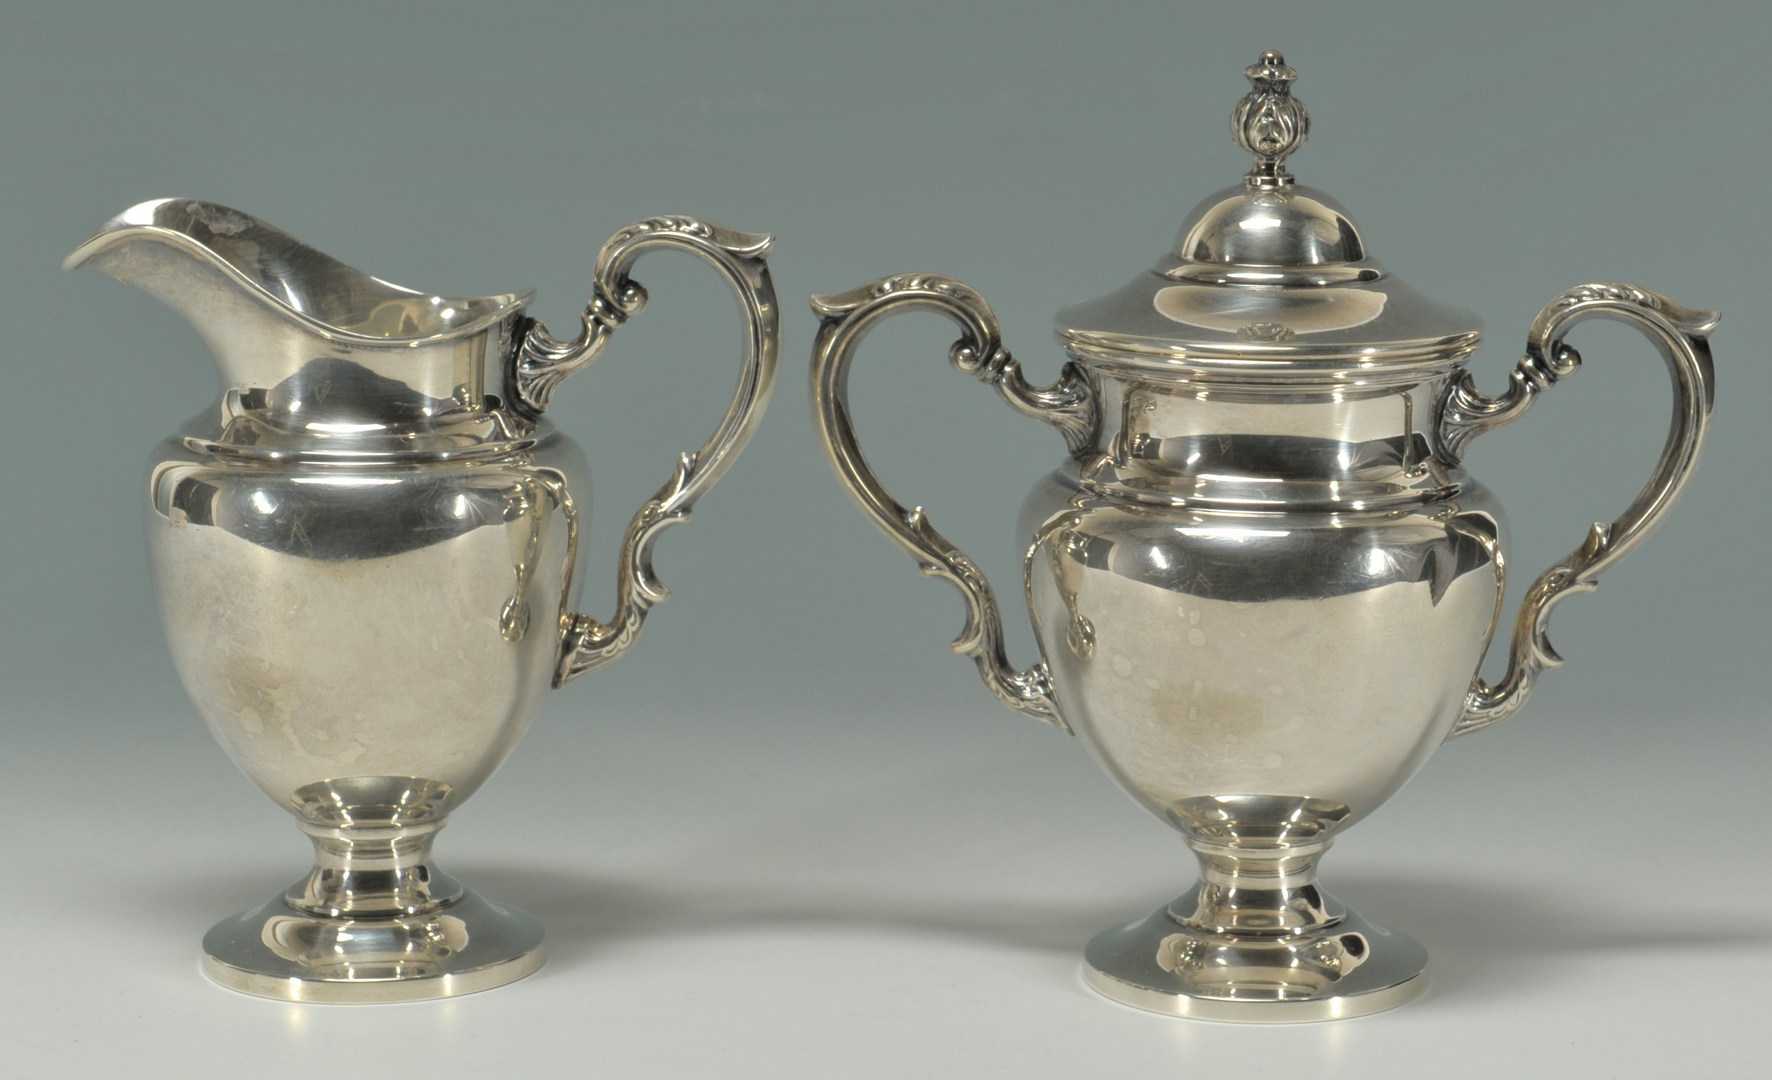 Lot 231 Fisher 3 Piece Sterling Silver Tea Service